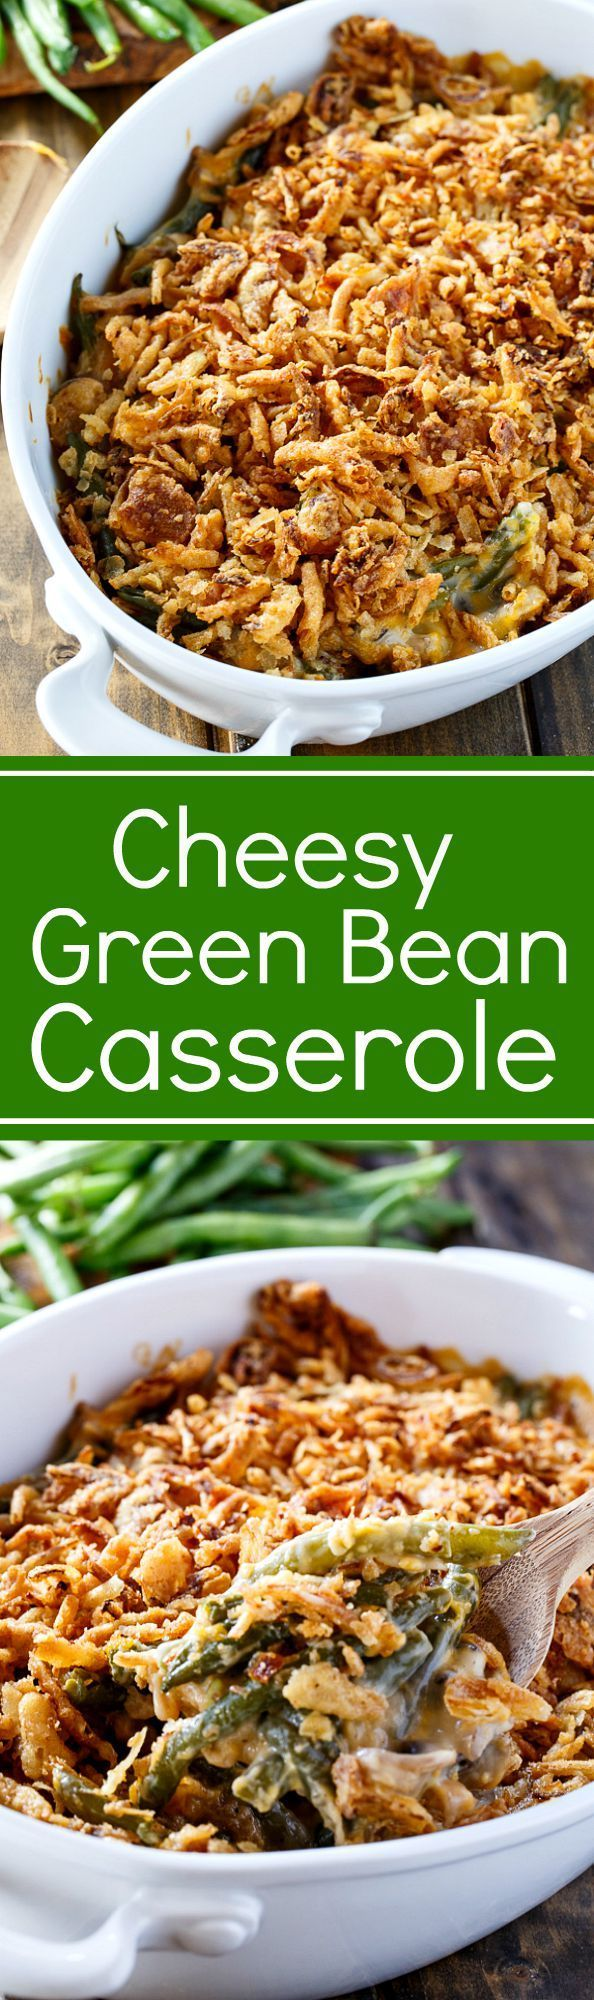 This traditional casserole made with cut green beans, cream of mushroom soup, and French fried onions is the perfect addition to your holiday downloadsolutionles0f.cf: 3.